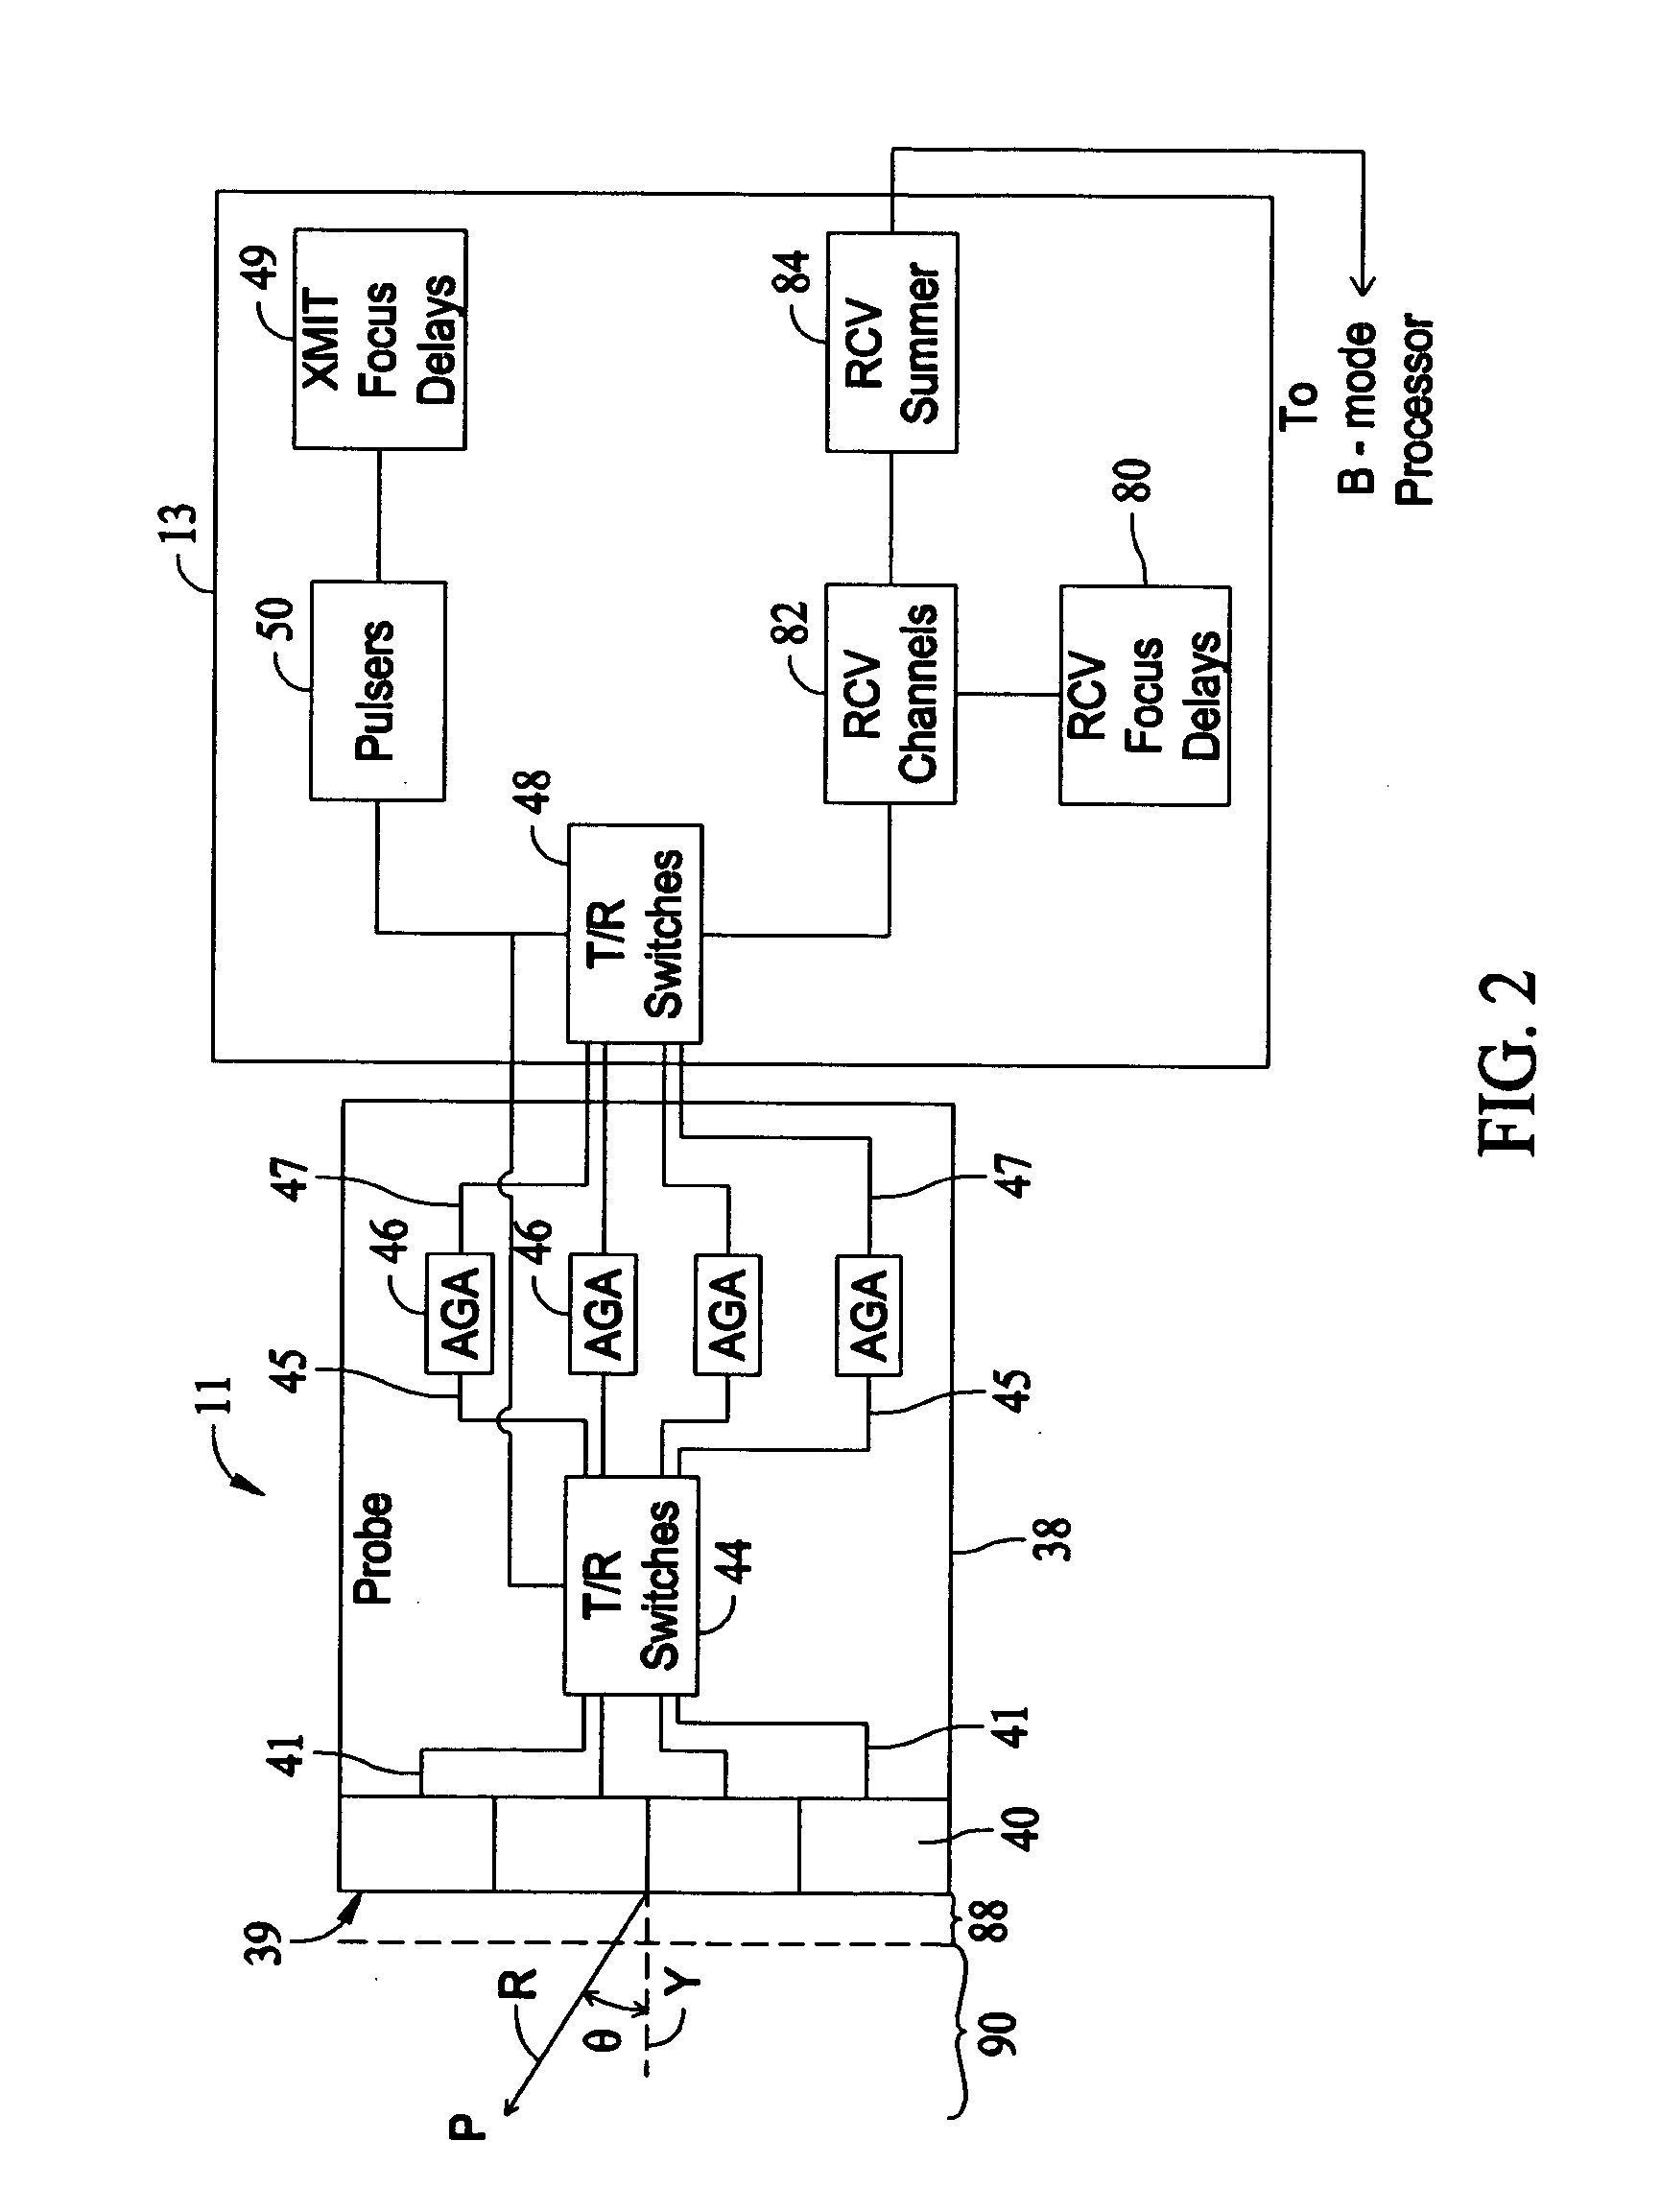 Patent Us20060042390 Systems And Methods For Adjusting Gain Within Ccvs Current Controlled Voltage Source In Practice Electrical Drawing